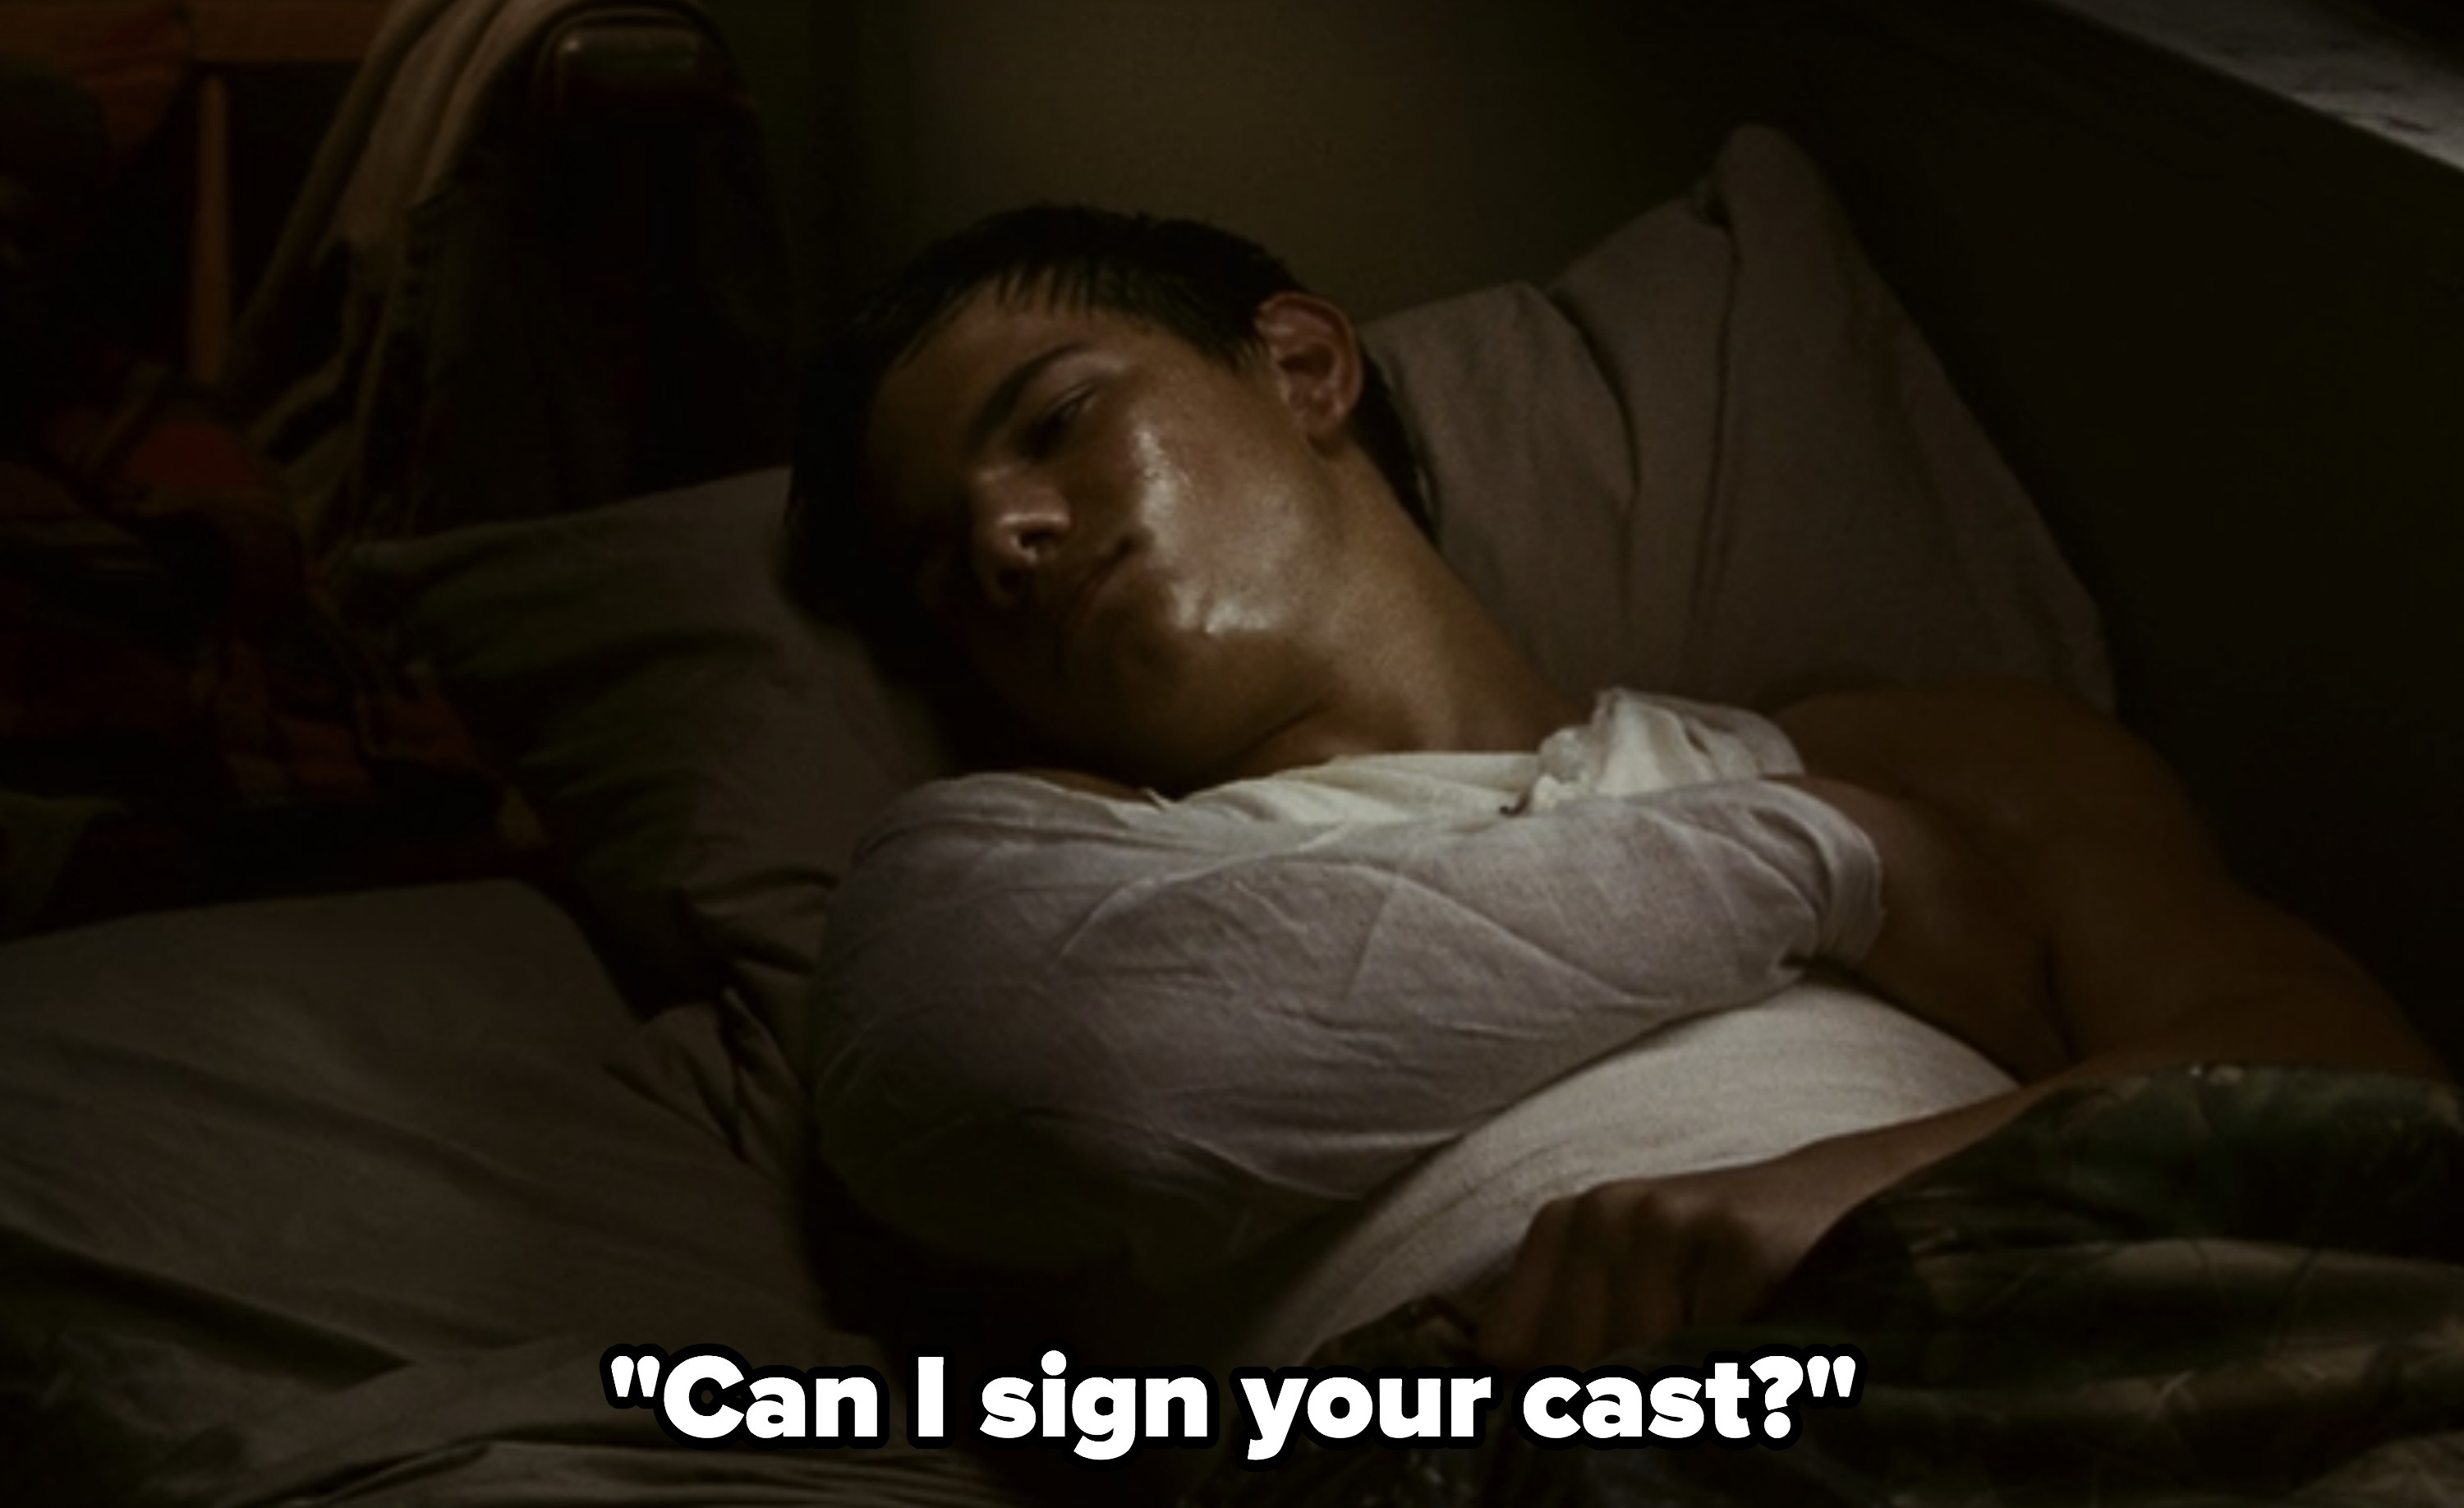 Rob:Can I sign your cast?